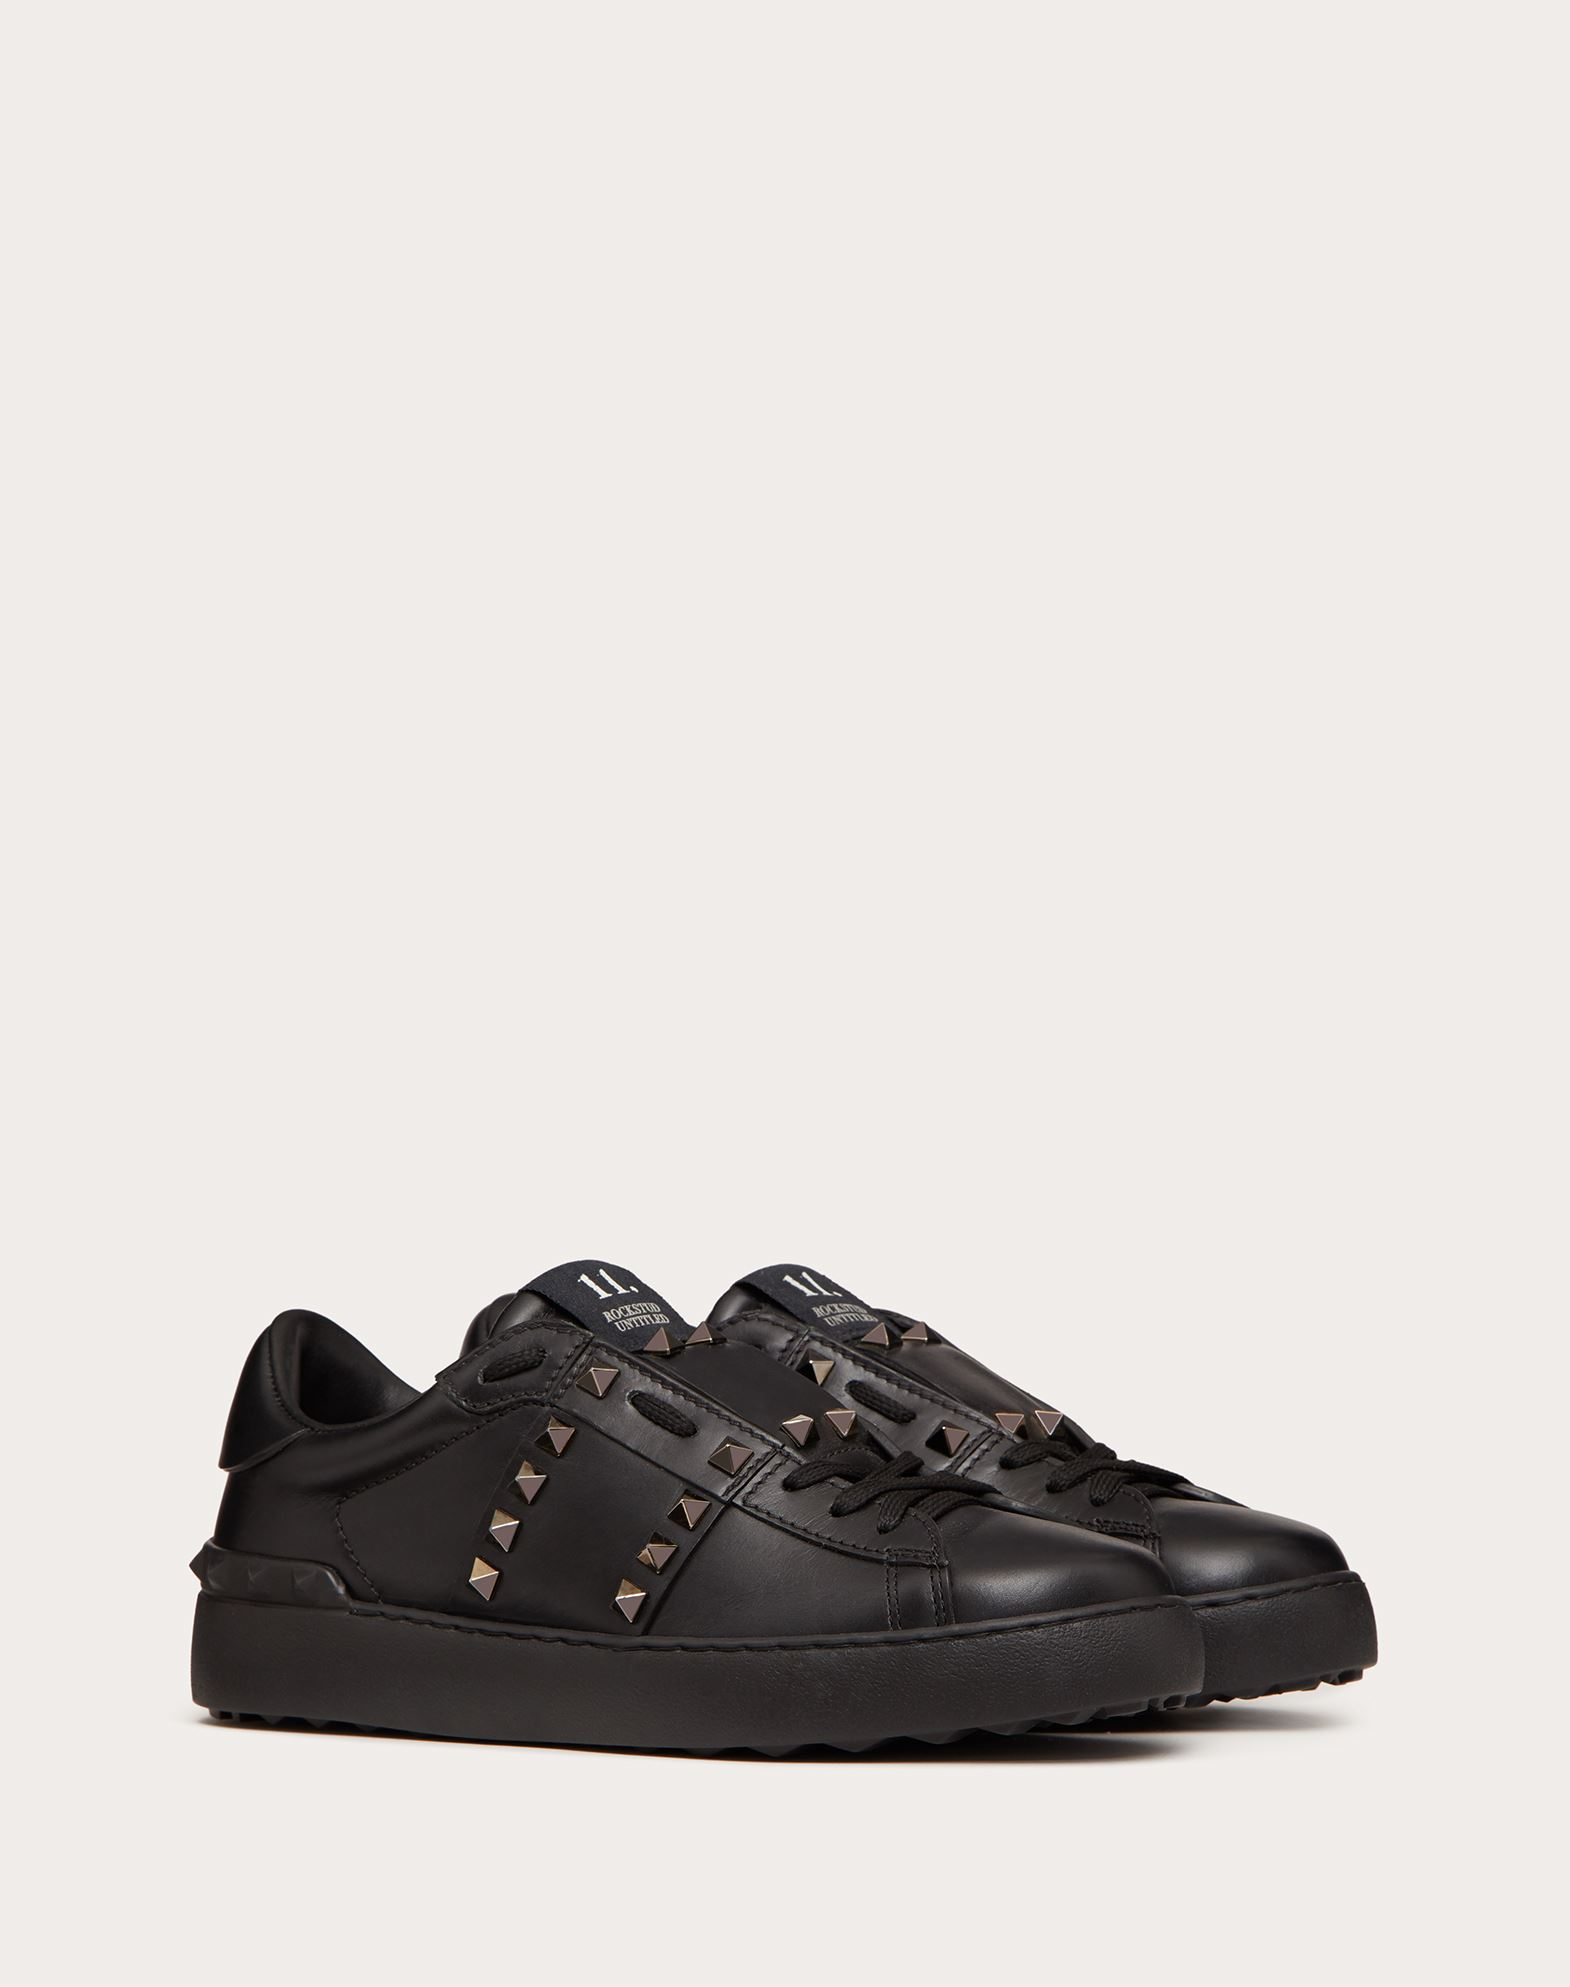 VALENTINO GARAVANI Rockstud Untitled Noir Sneaker LOW-TOP SNEAKERS D r